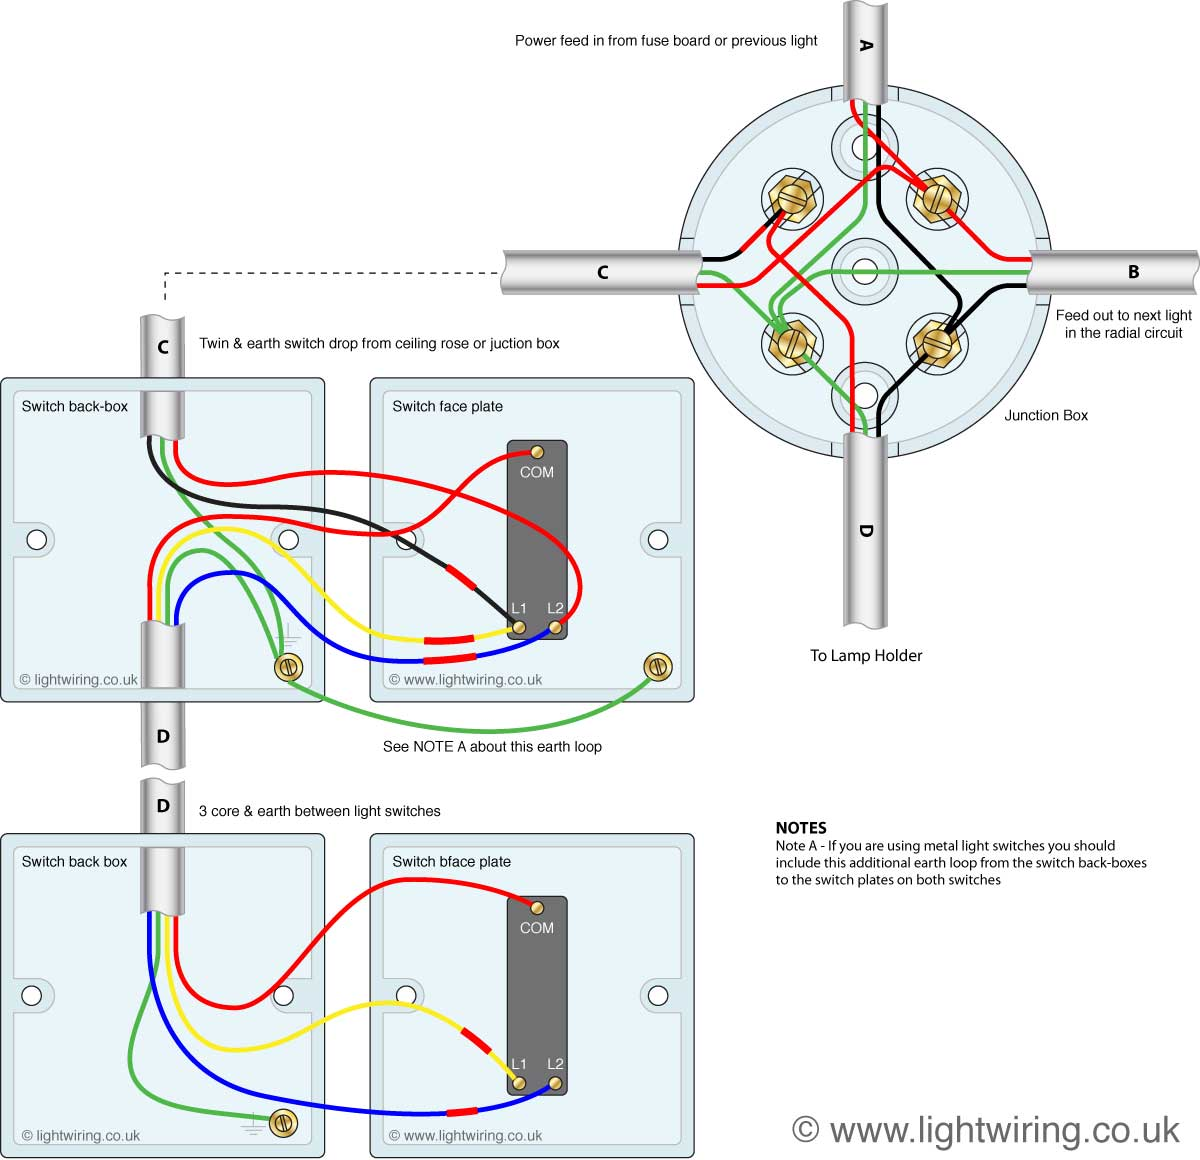 Remarkable Two Way Switch Wiring Diagram Uk Basic Electronics Wiring Diagram Wiring Digital Resources Indicompassionincorg